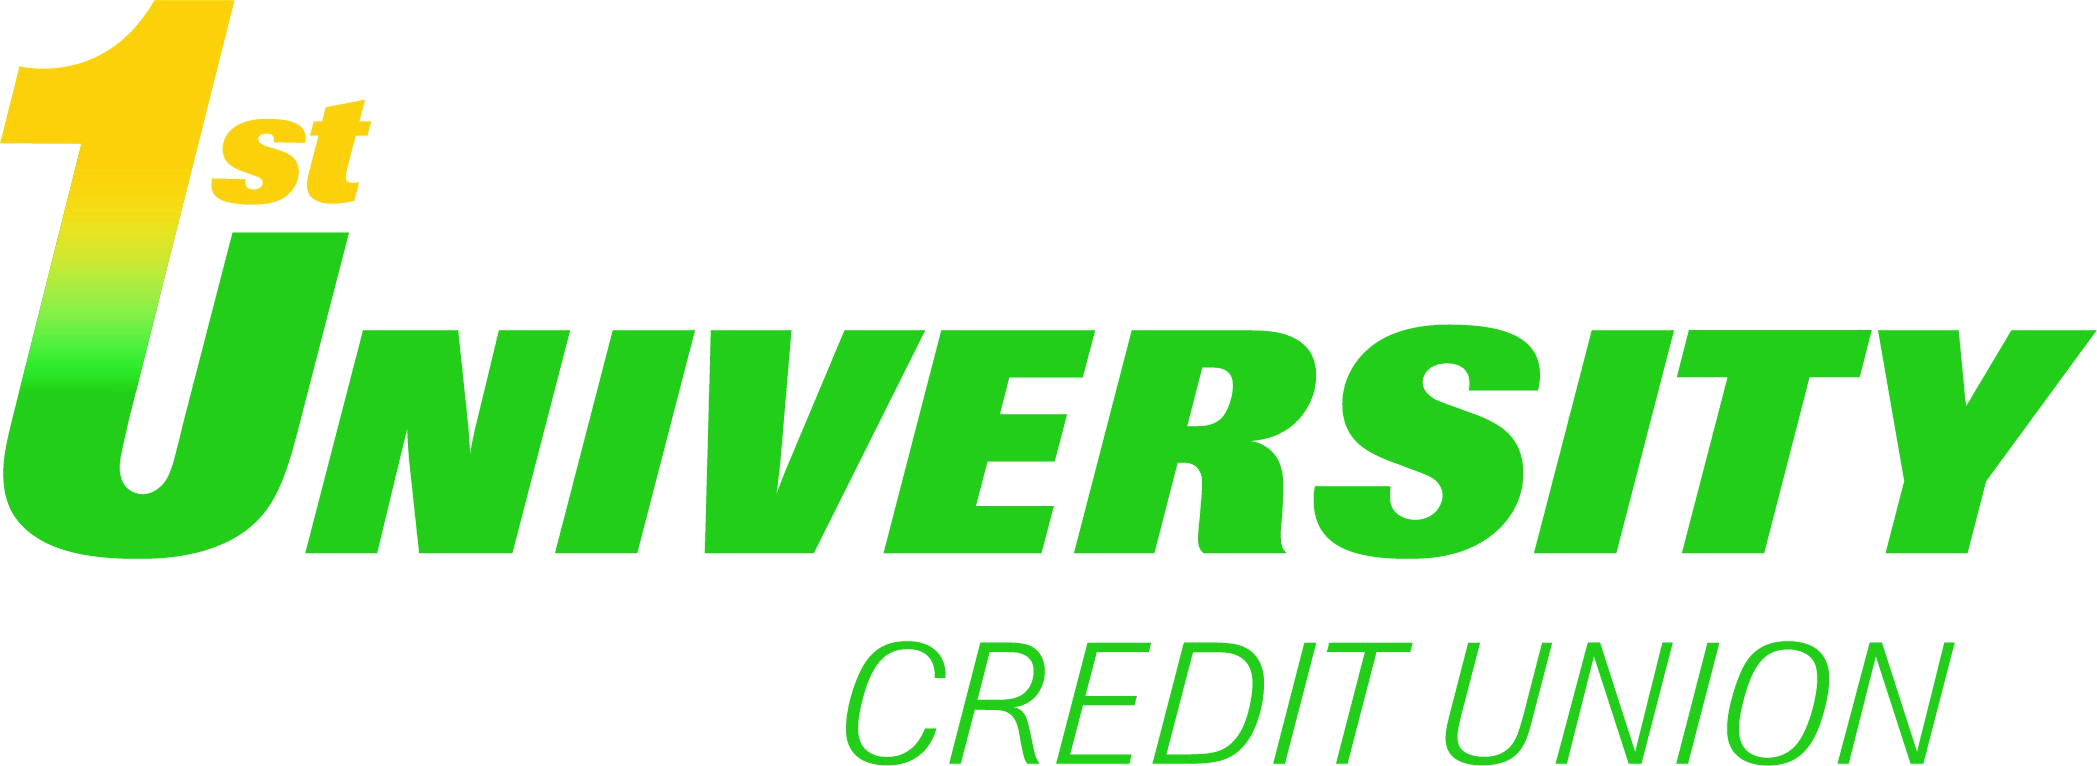 First University Credit Union Logo